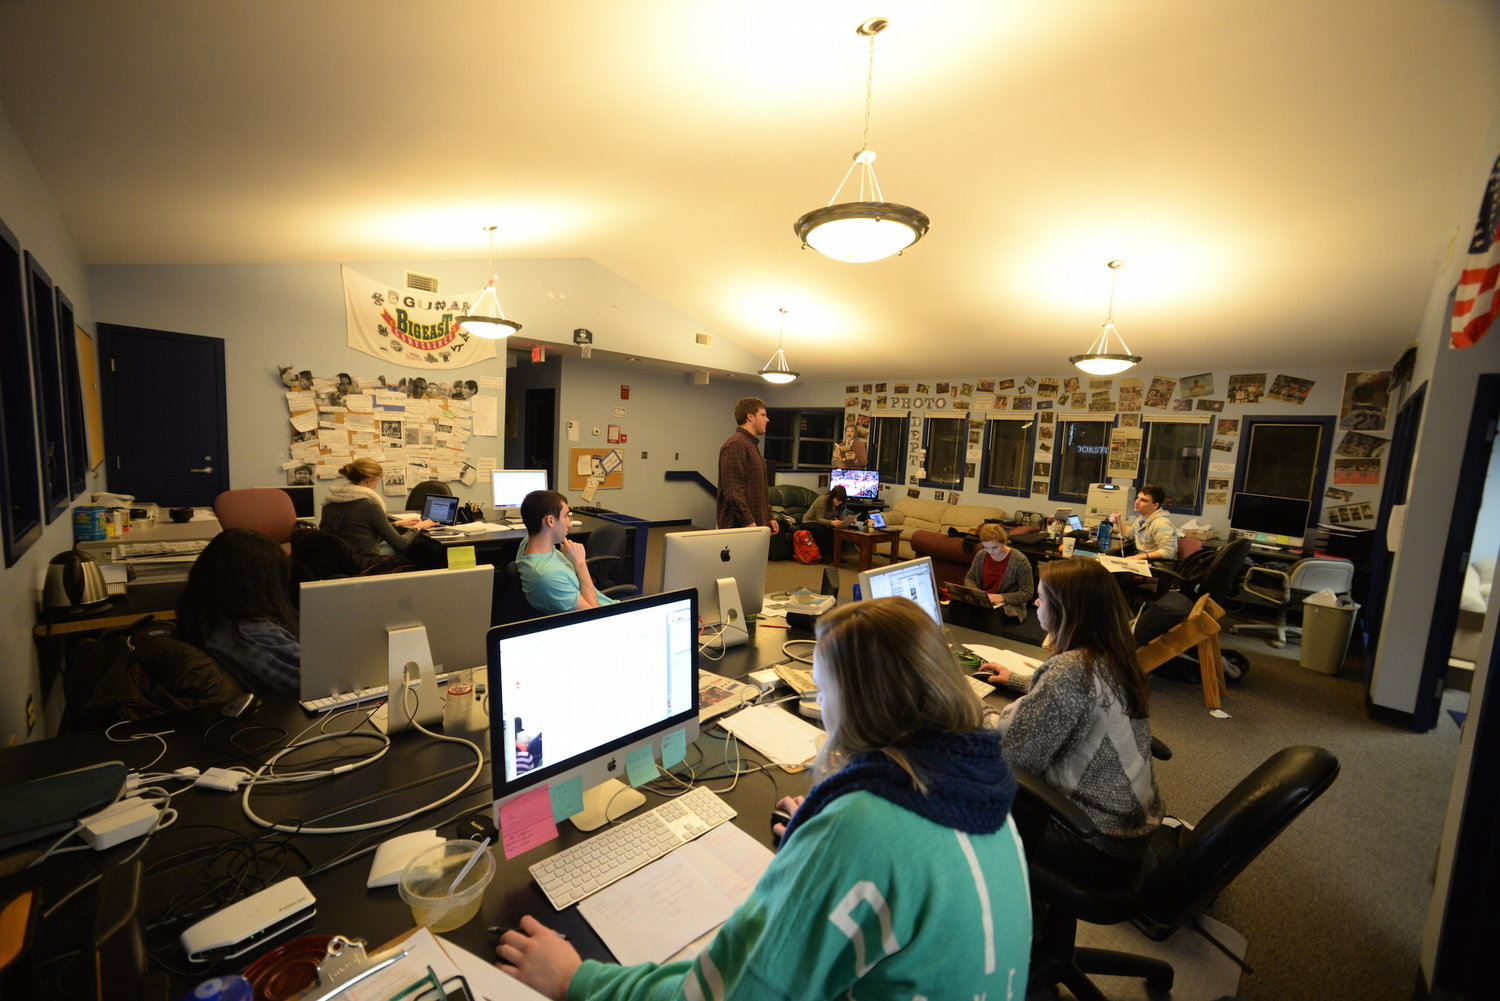 Although UConn has threatened to cut funding to the paper, The Daily Campus maintains its editorial independence and will keep it that way. (Amar Batra/The Daily Campus)